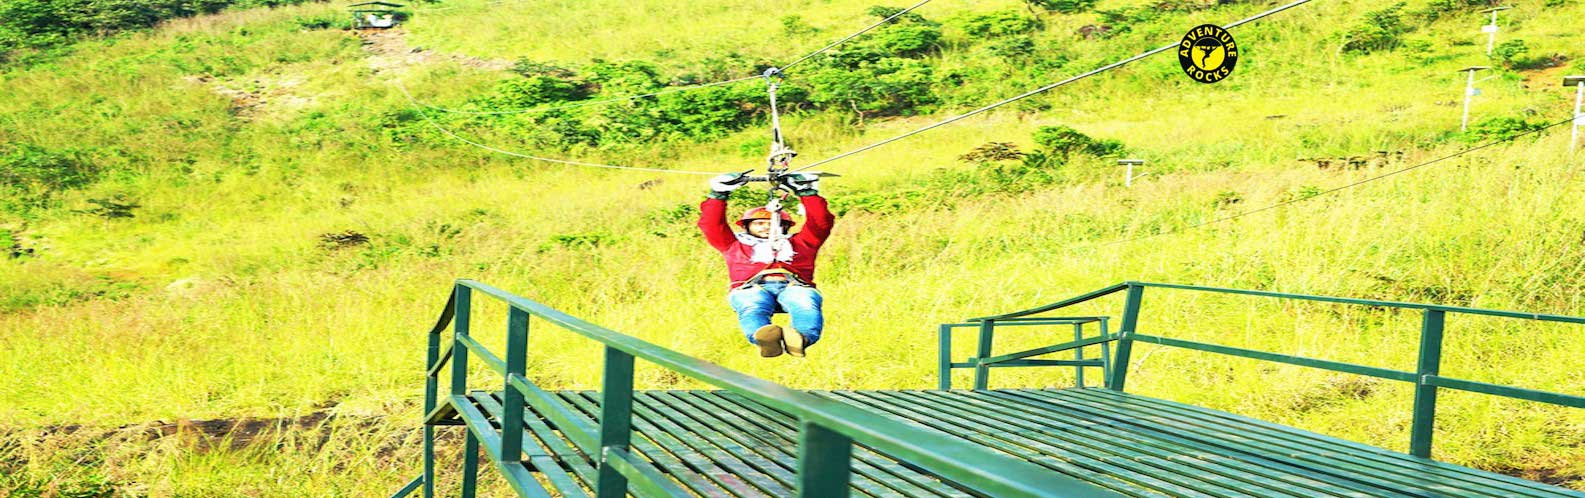 Zip Line Manufacturers in Bhagalpur